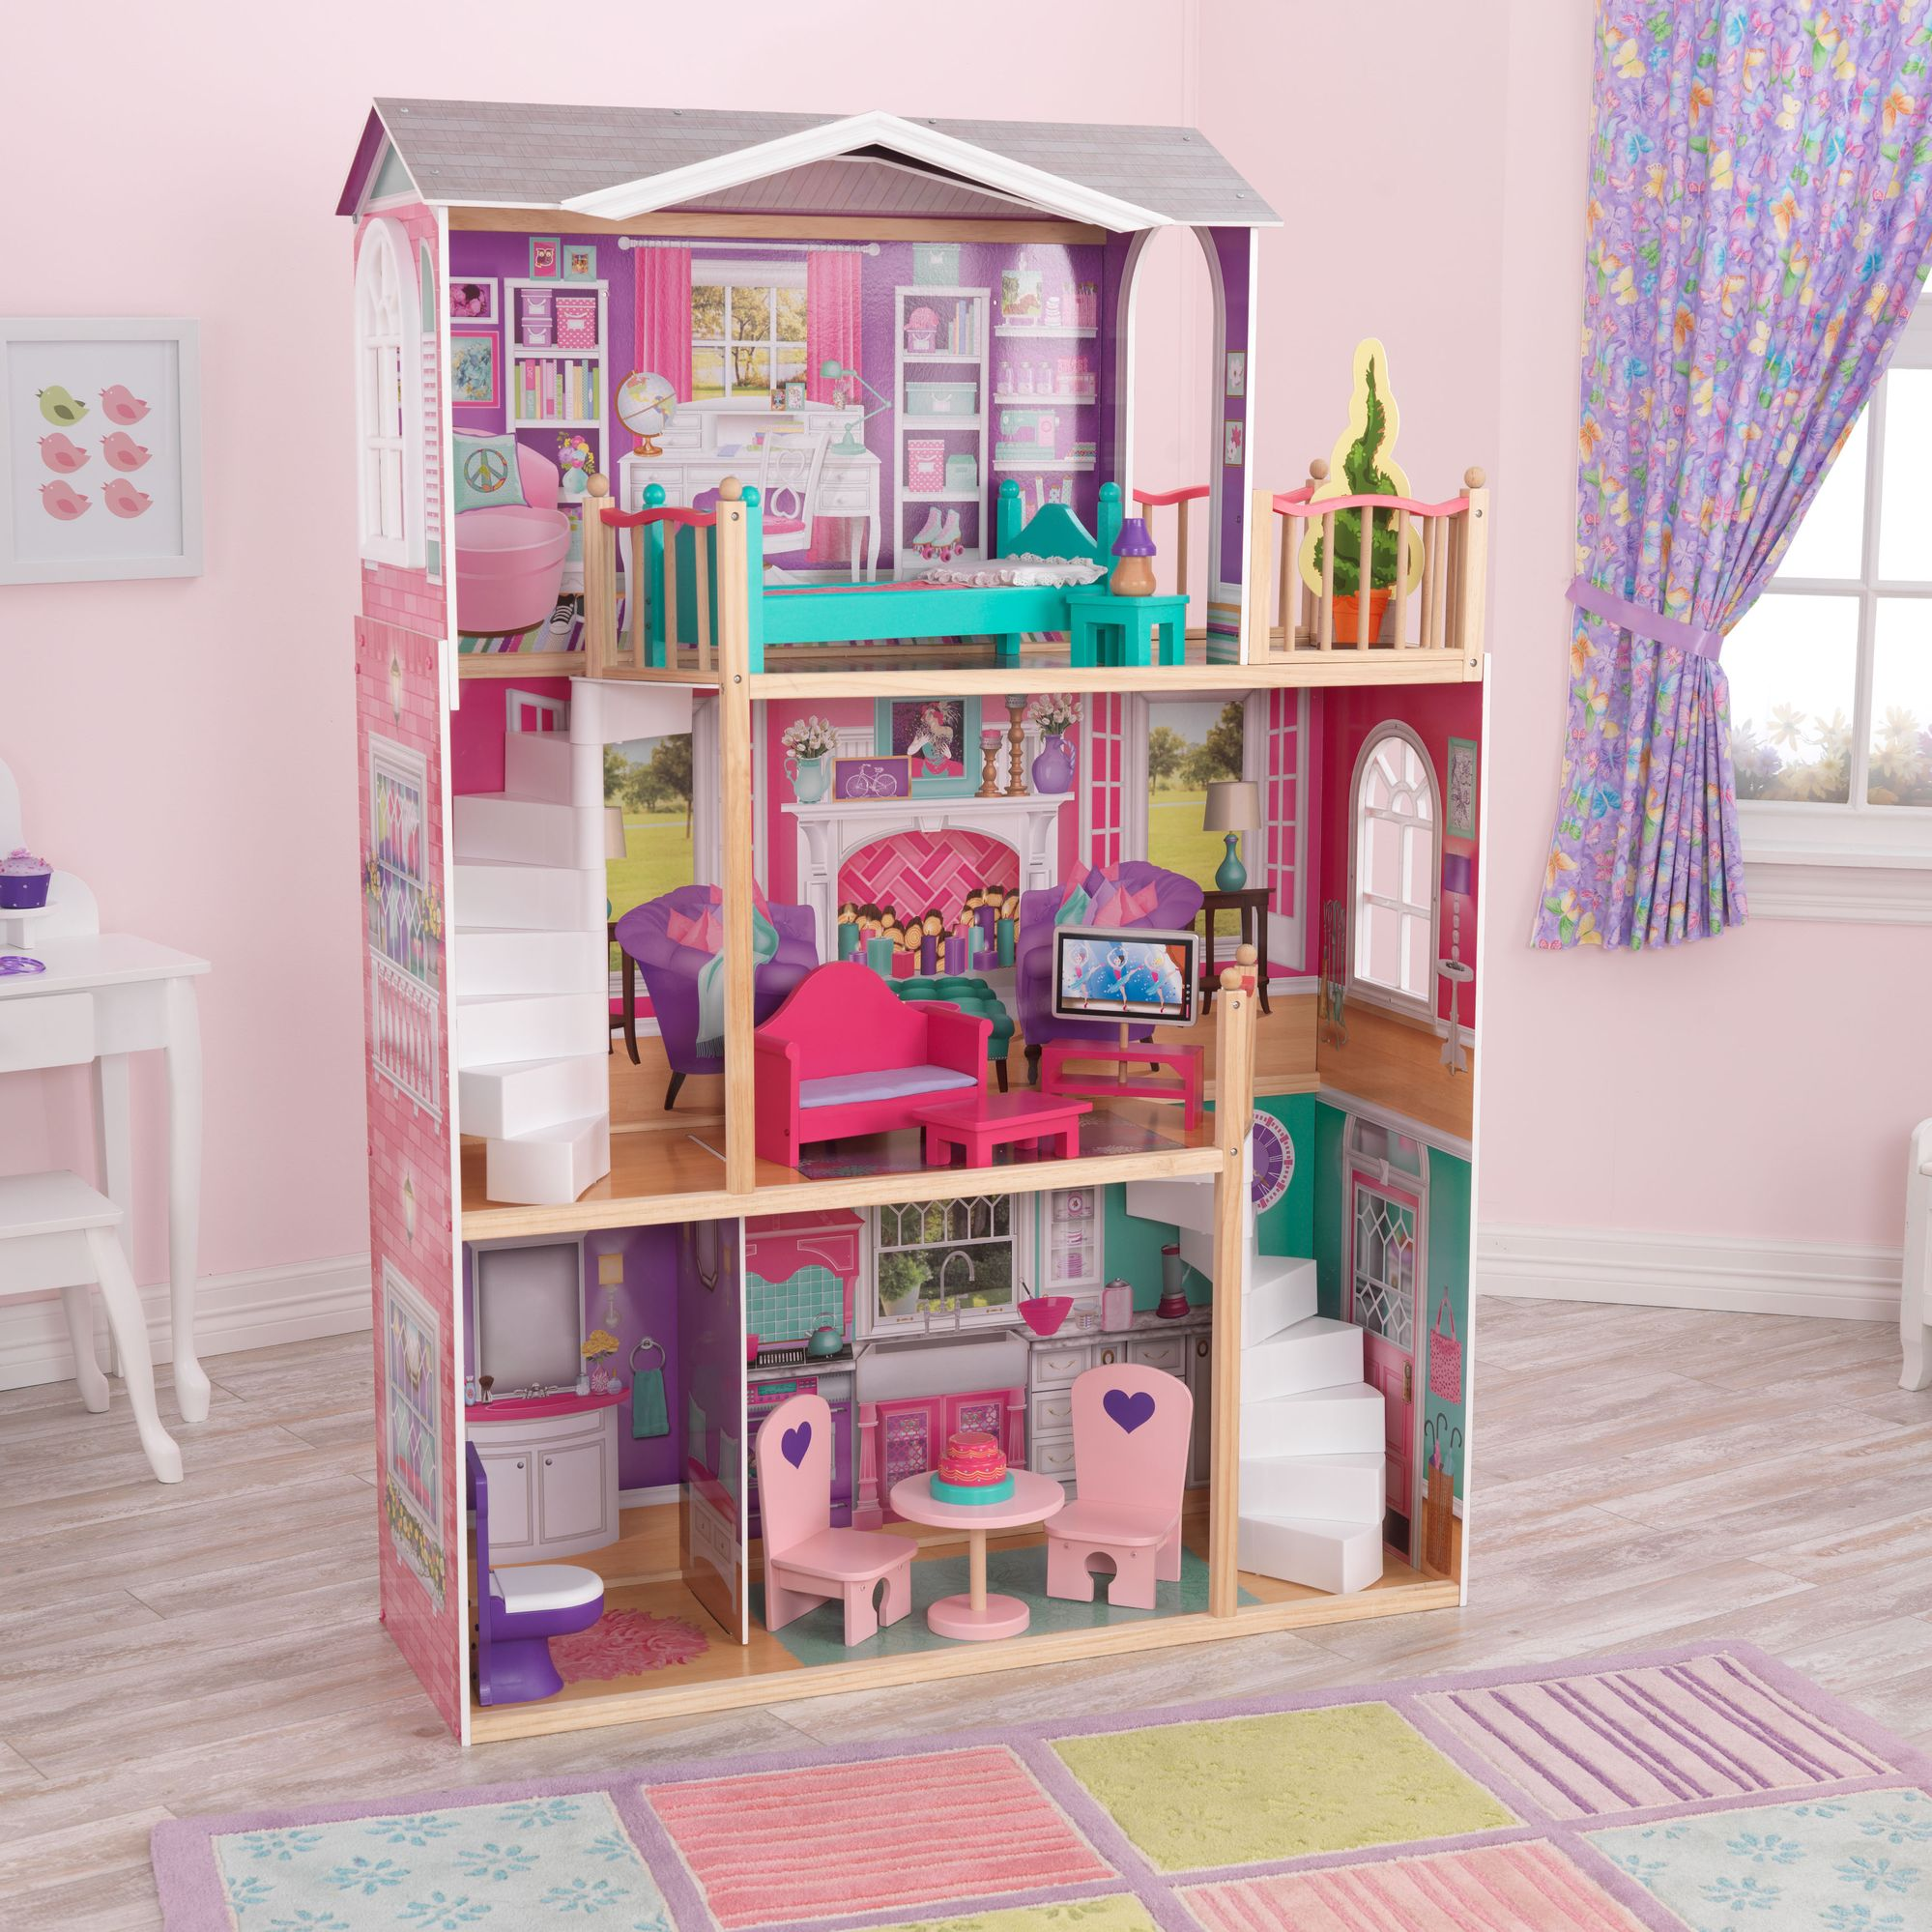 Hape all season dollhouse nice house for boys and girls - Maison poupee kidkraft ...